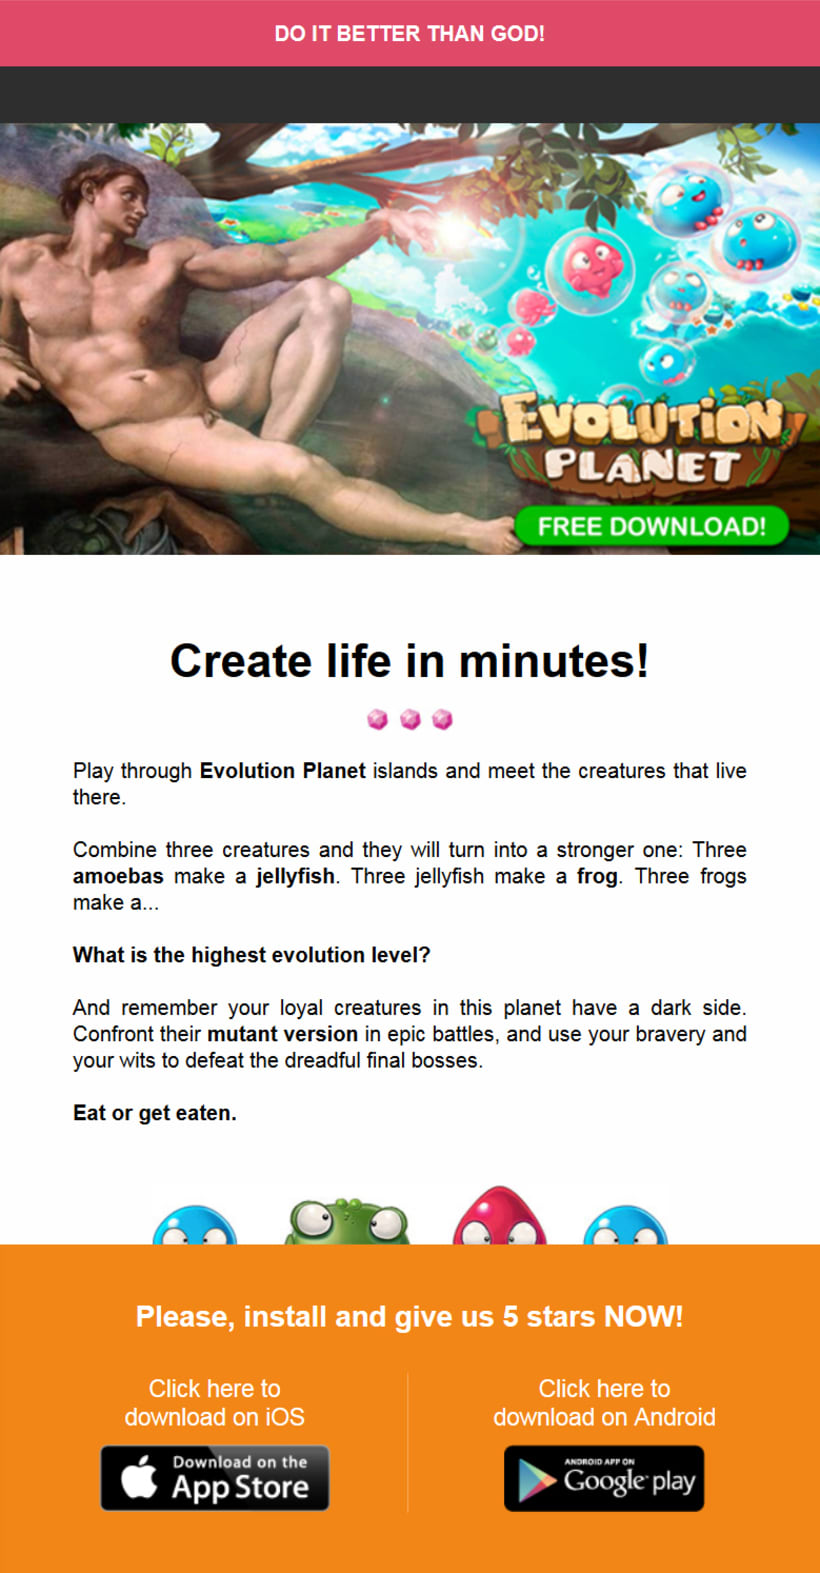 Newsletter Juego Evolution Planet de Play Wireless - Do it better than God! 0